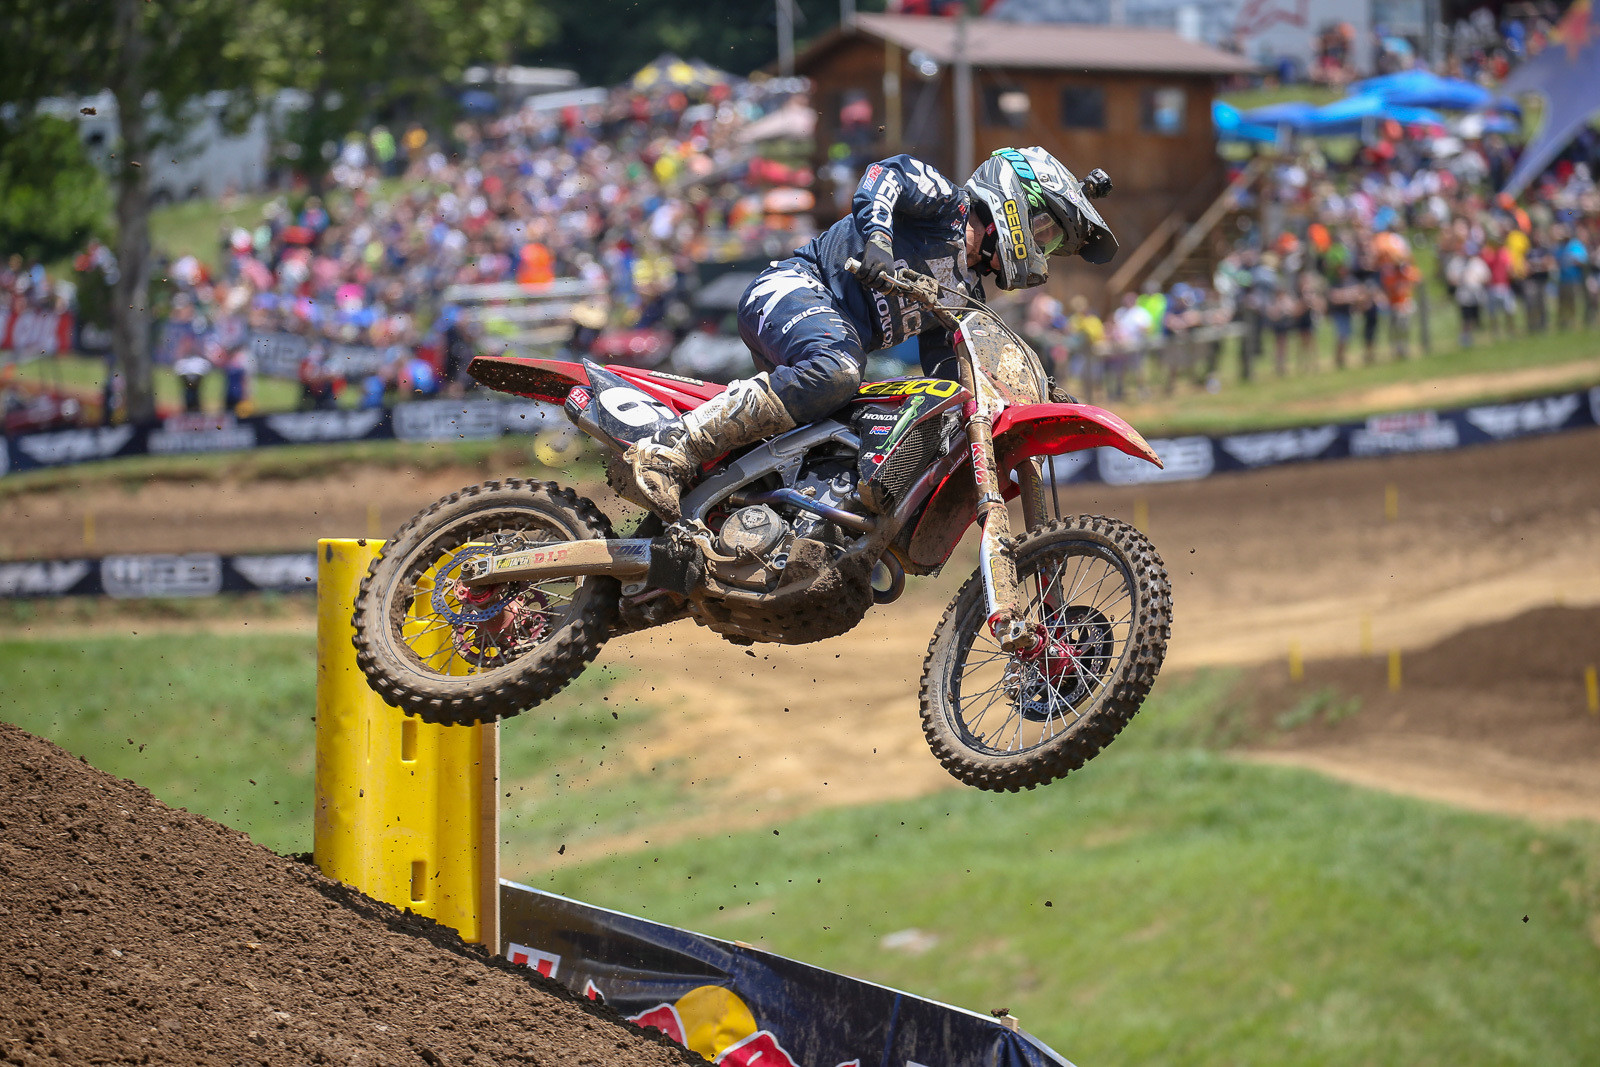 Injury Report: Jeremy Martin - Fractured L1 Vertebrae